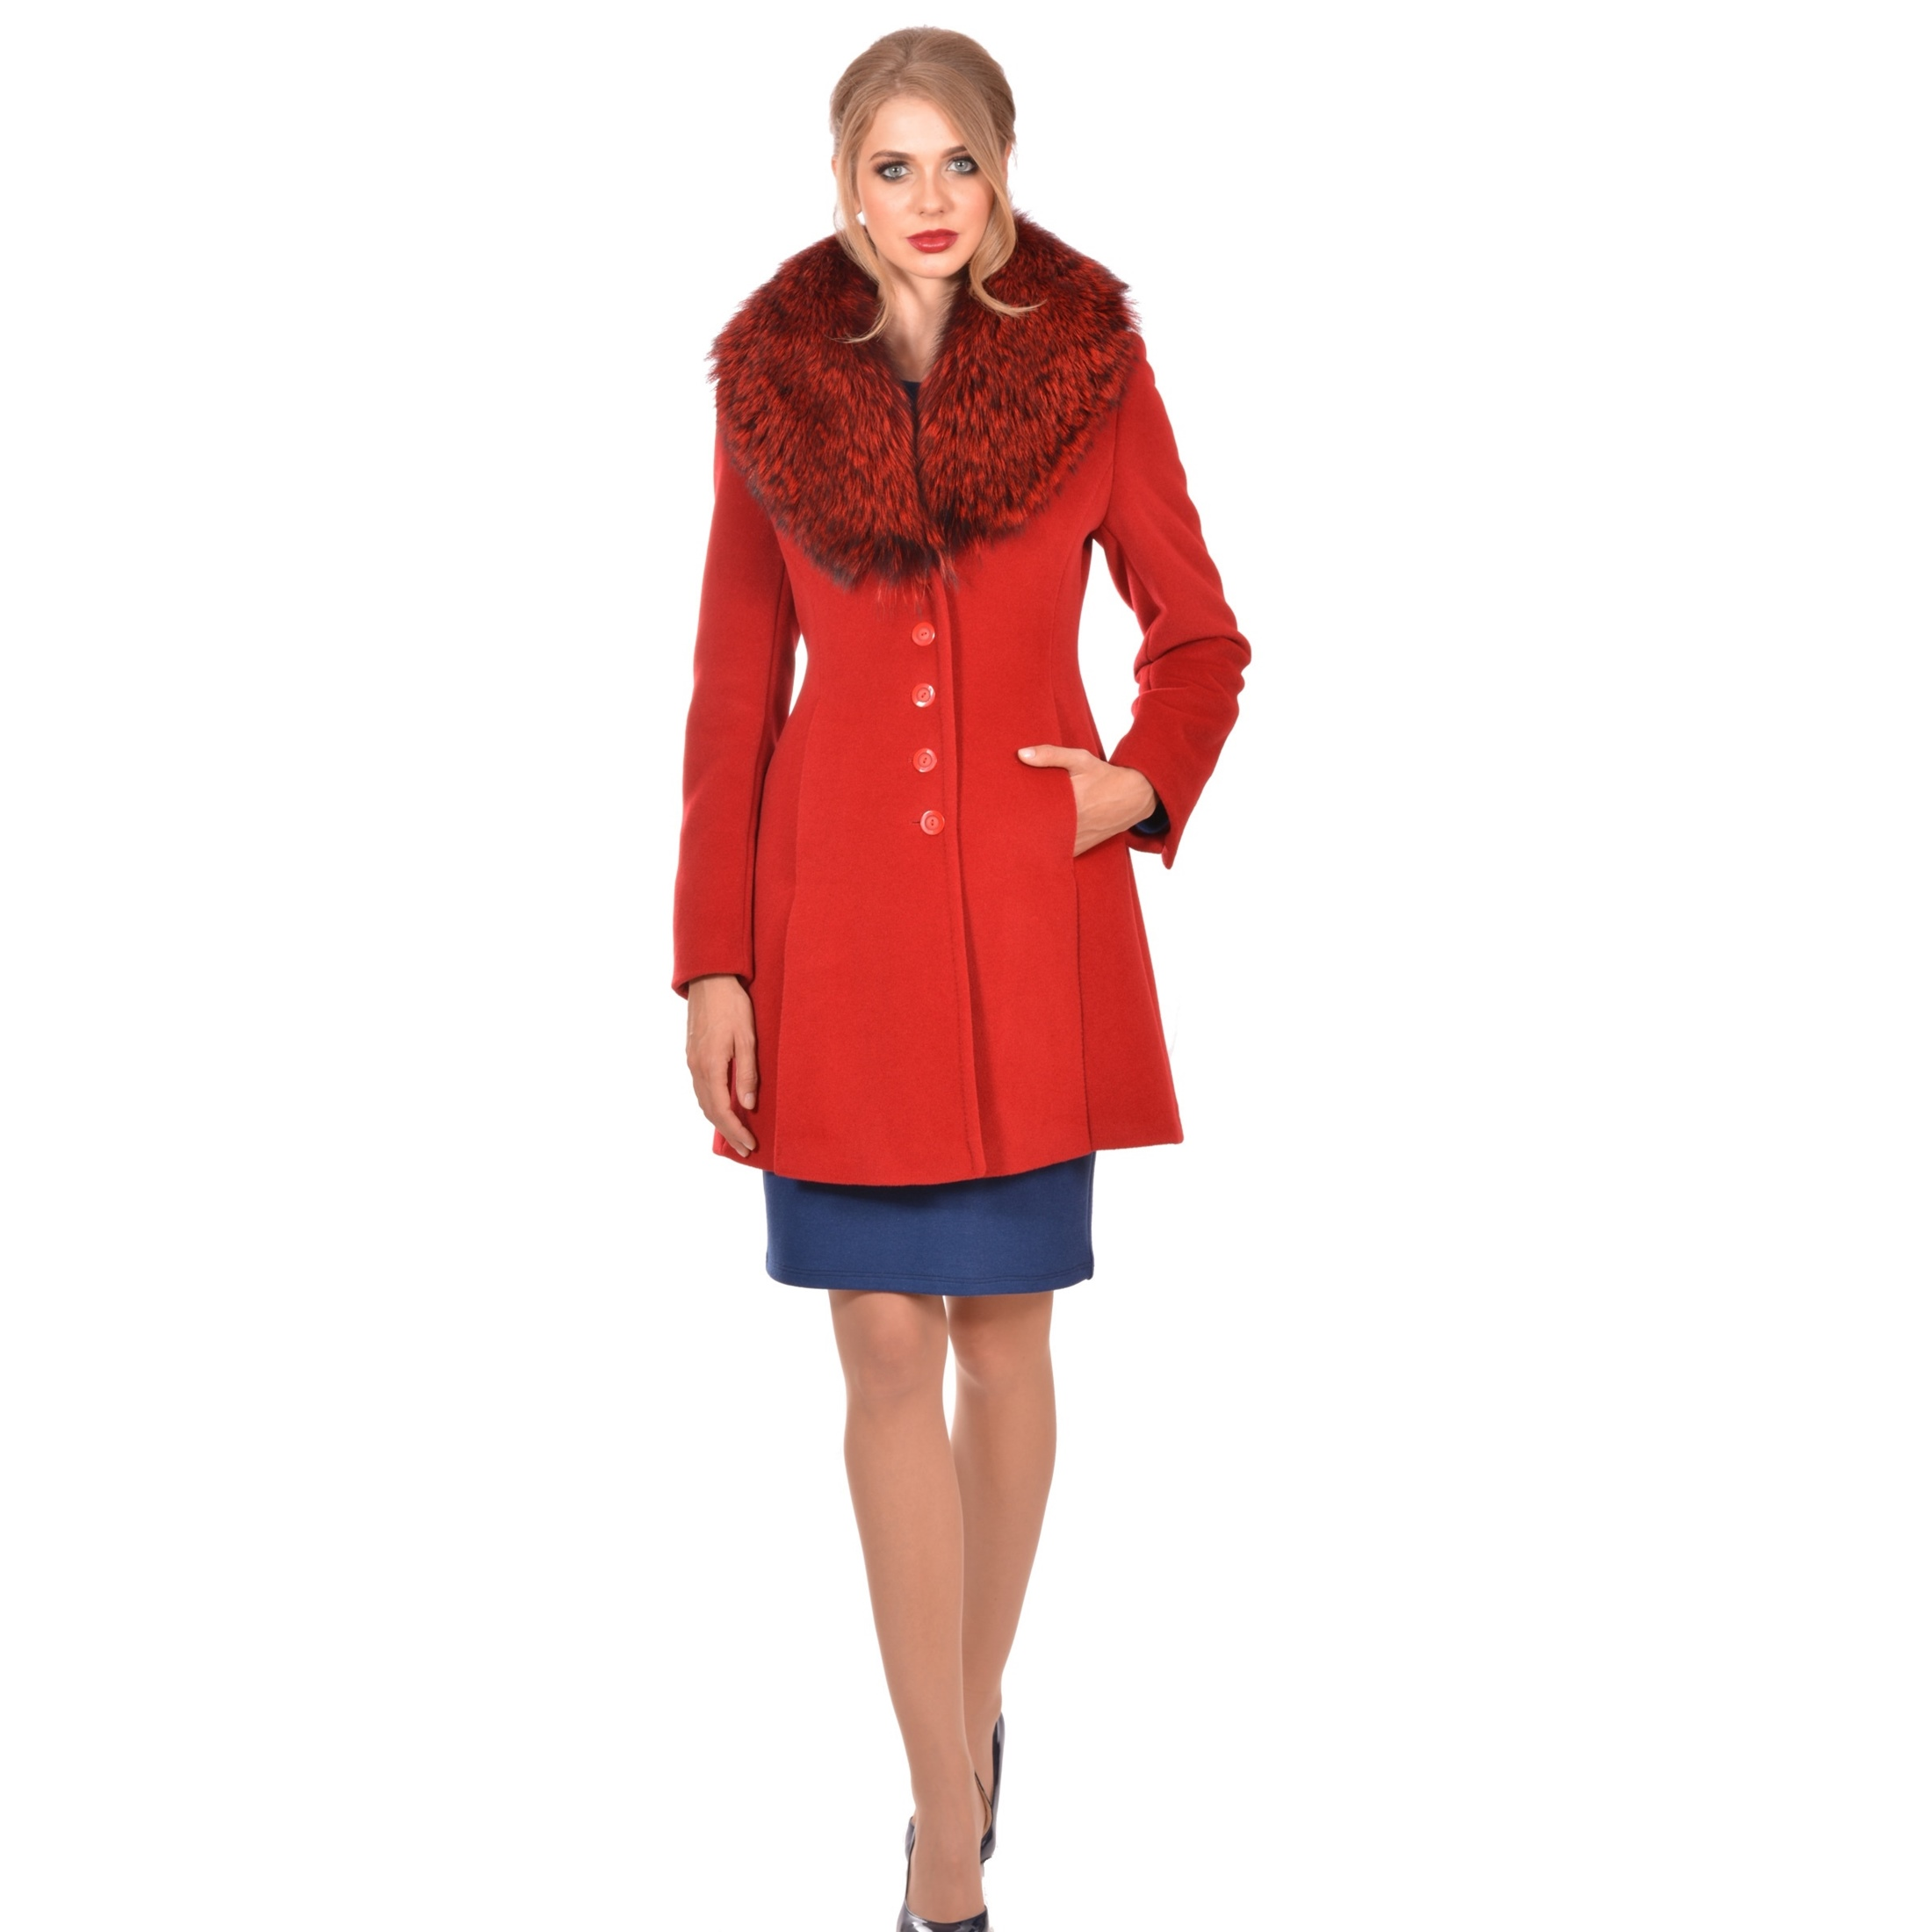 short red coat lady m,crveni kratki kaput lady m